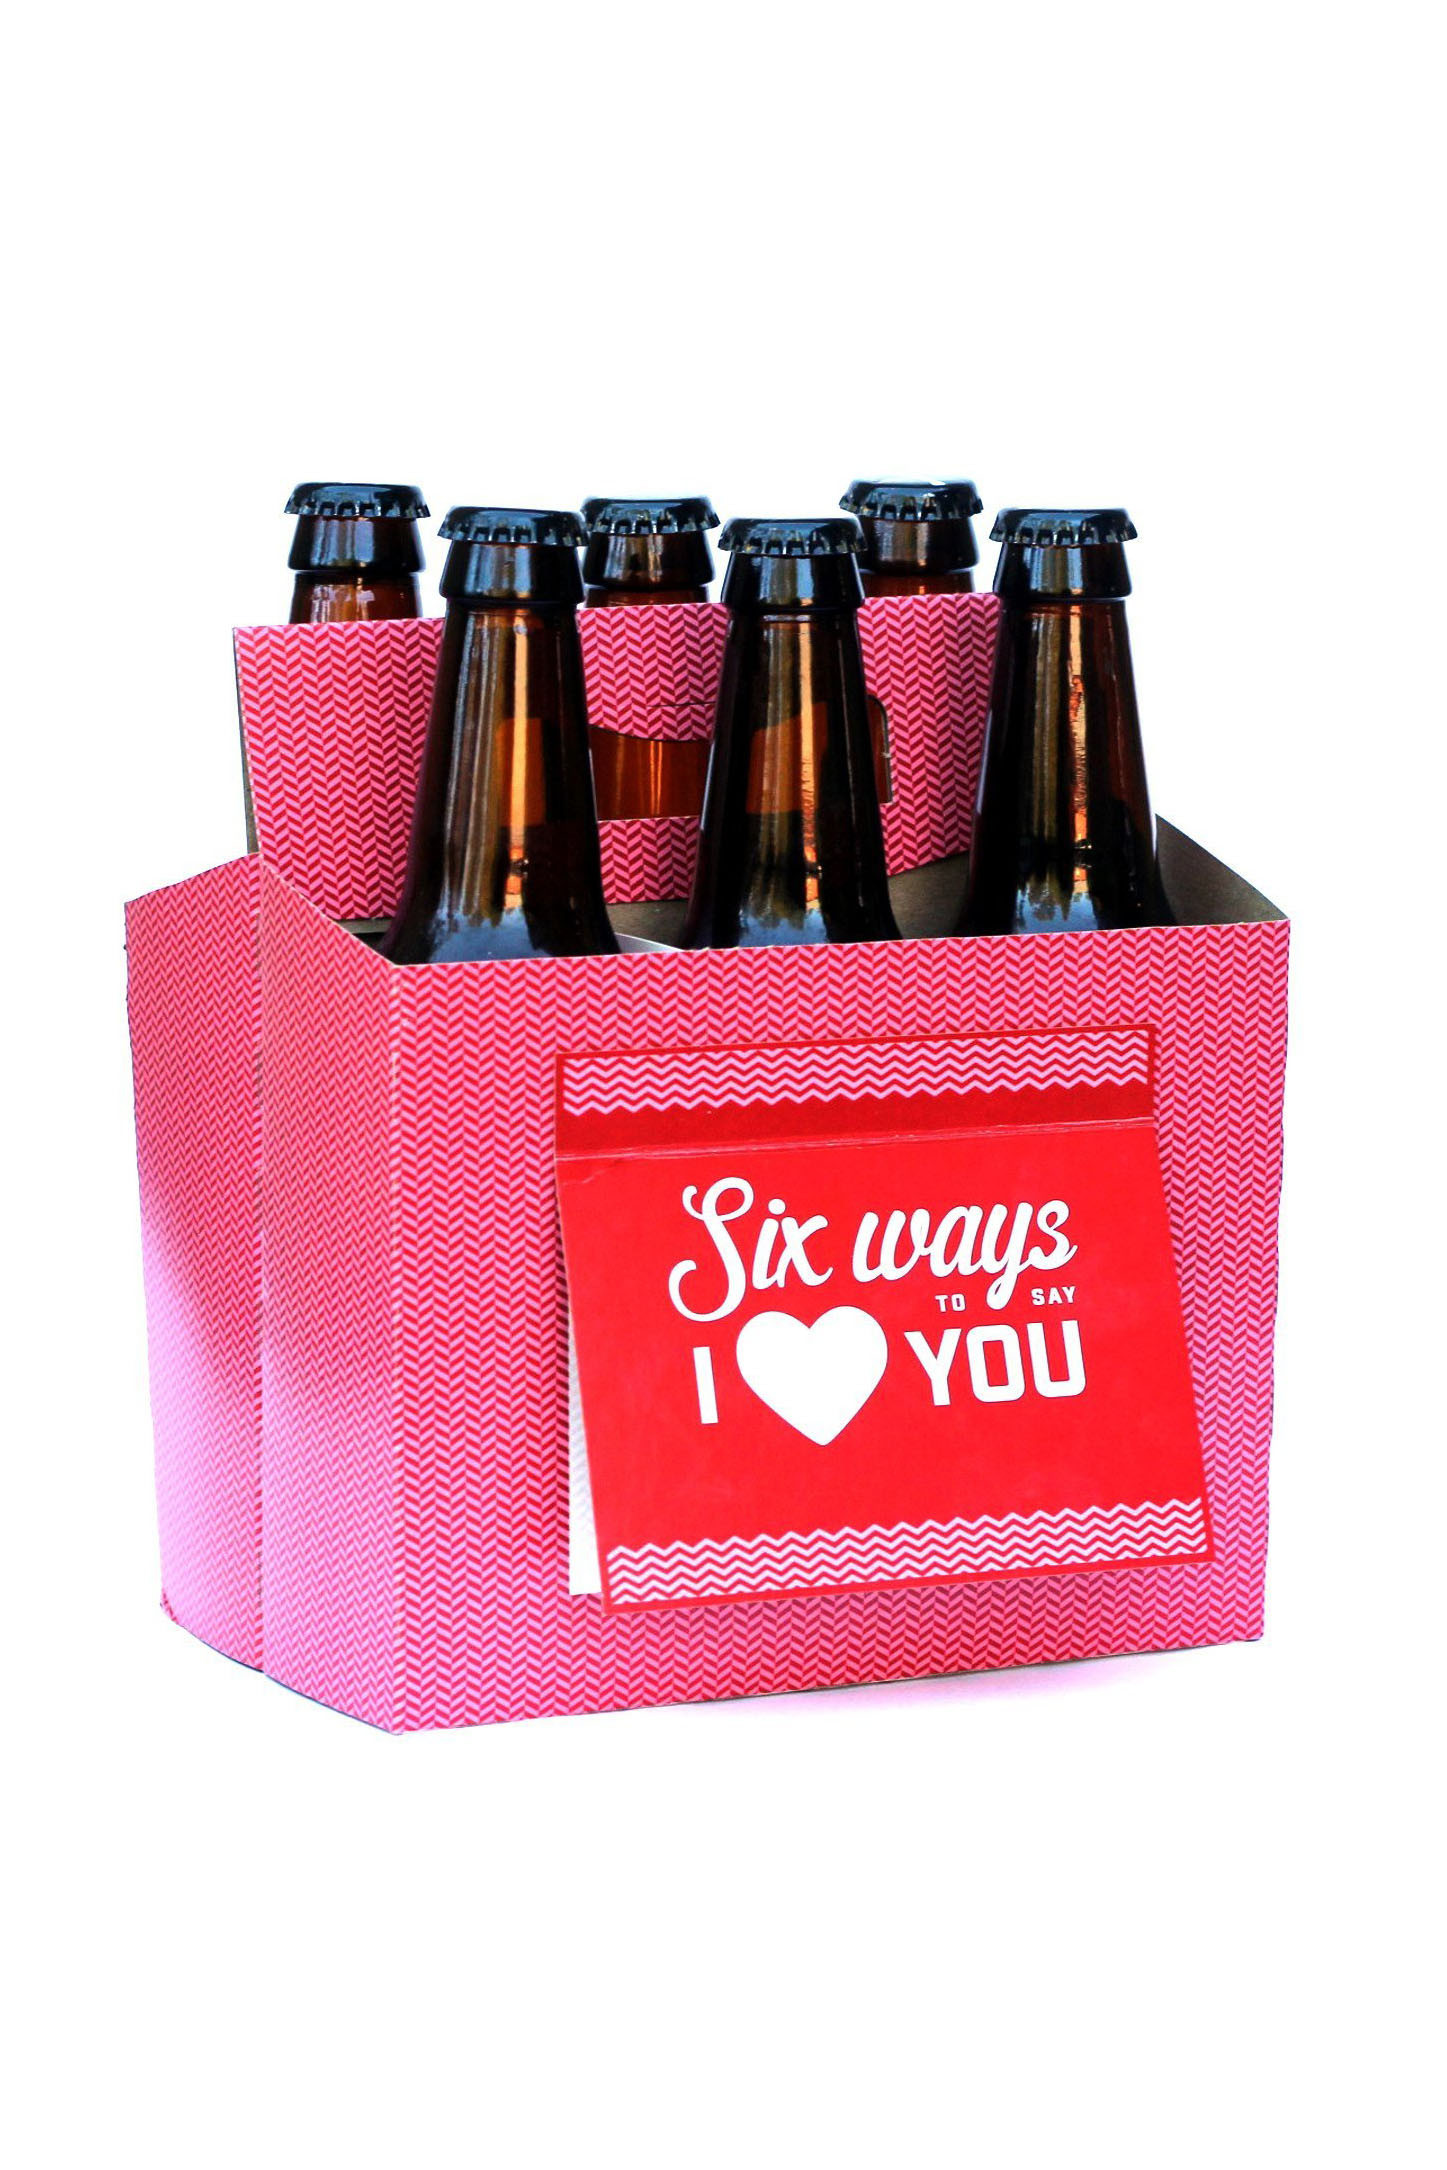 Best ideas about Male Gift Ideas For Valentines Day . Save or Pin 30 Best Valentine s Day Gifts for Him 2017 Good Ideas Now.